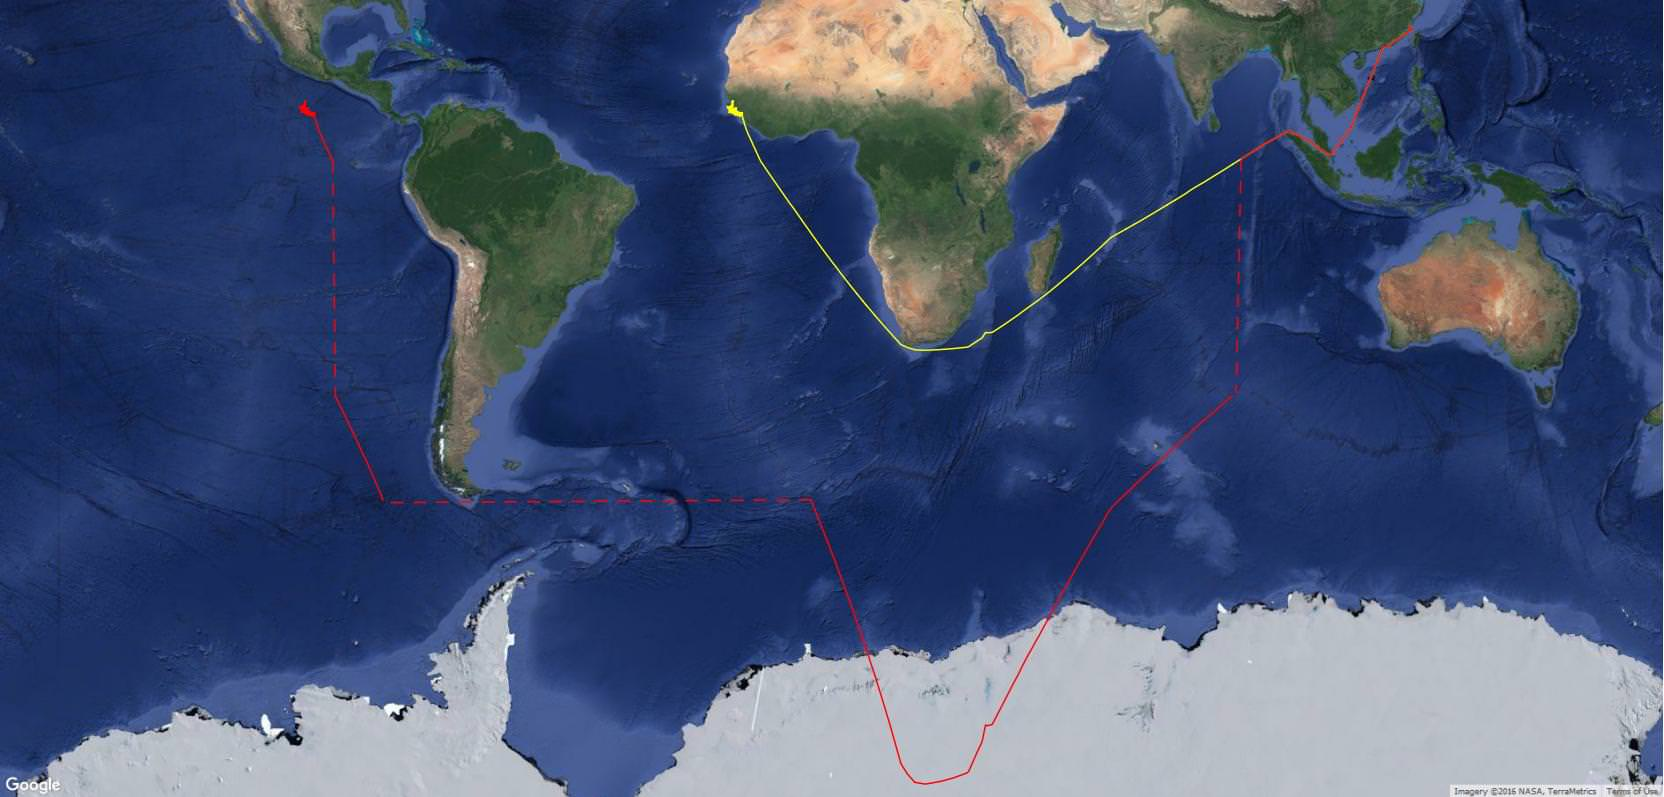 The red track shows the broadcast position of the Fu Yuan Yu 359. The dashed lines indicate instantaneous changes in latitude and longitude that put the vessel off the coast of Mexico. The yellow track shows our reconstruction of their true position as they transited from the Chinese coast to fishing grounds off West Africa.